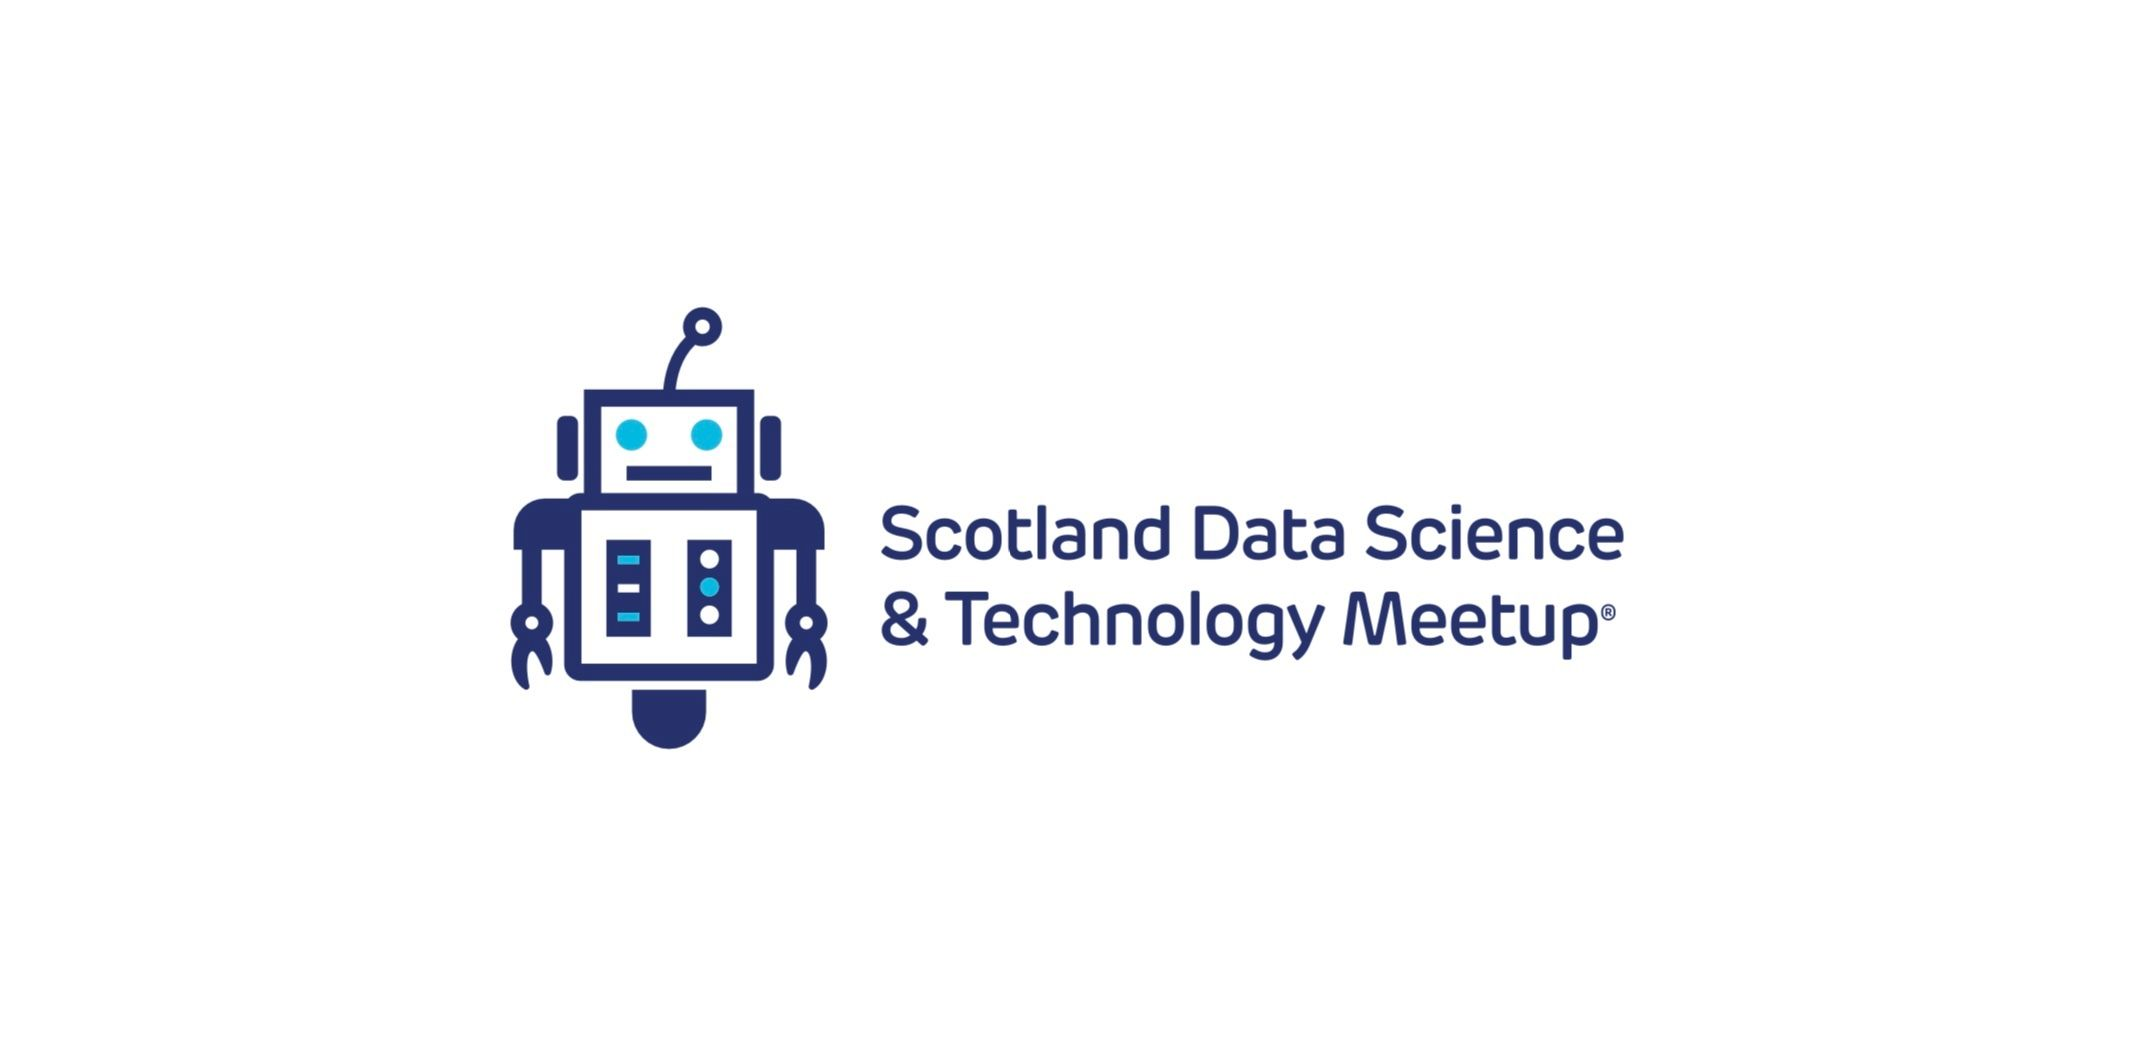 Scotland Data Science & Technology Meetup